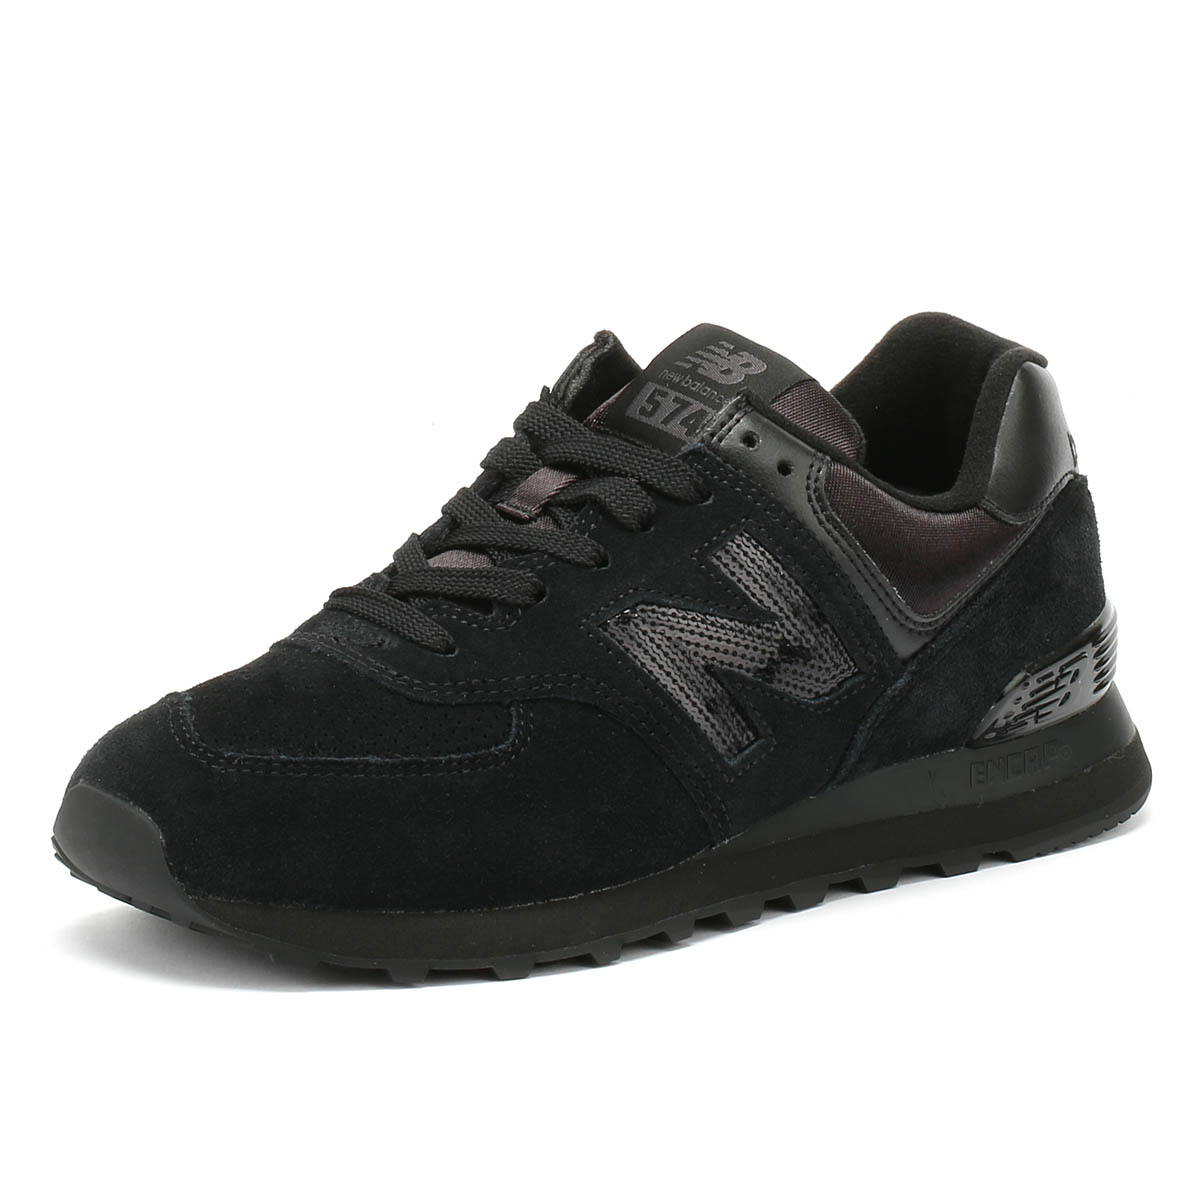 504897448f2 Details about New Balance Womens Trainers 574 Black Classic Lace Up Casual  Running Shoes